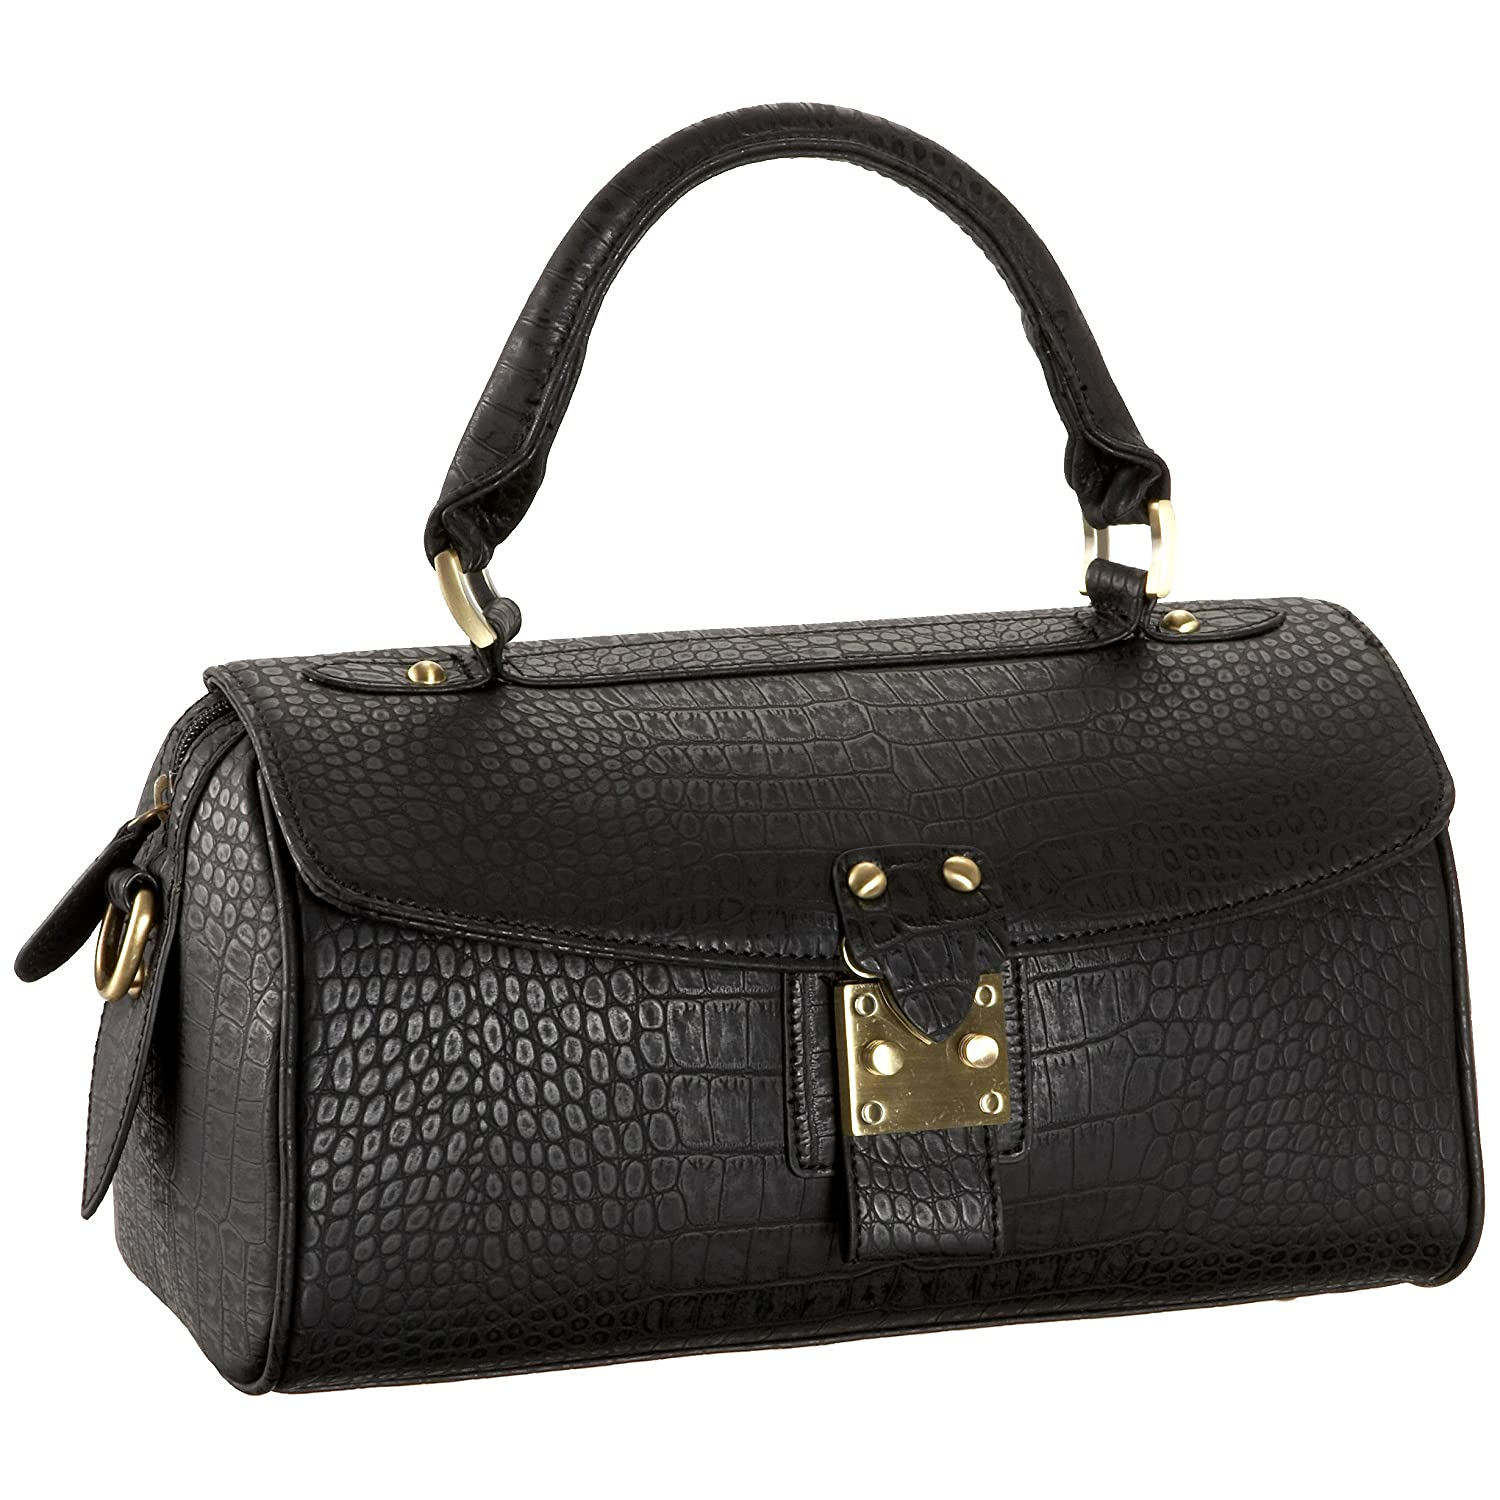 Fashion Handbags On High Fashion Handbags